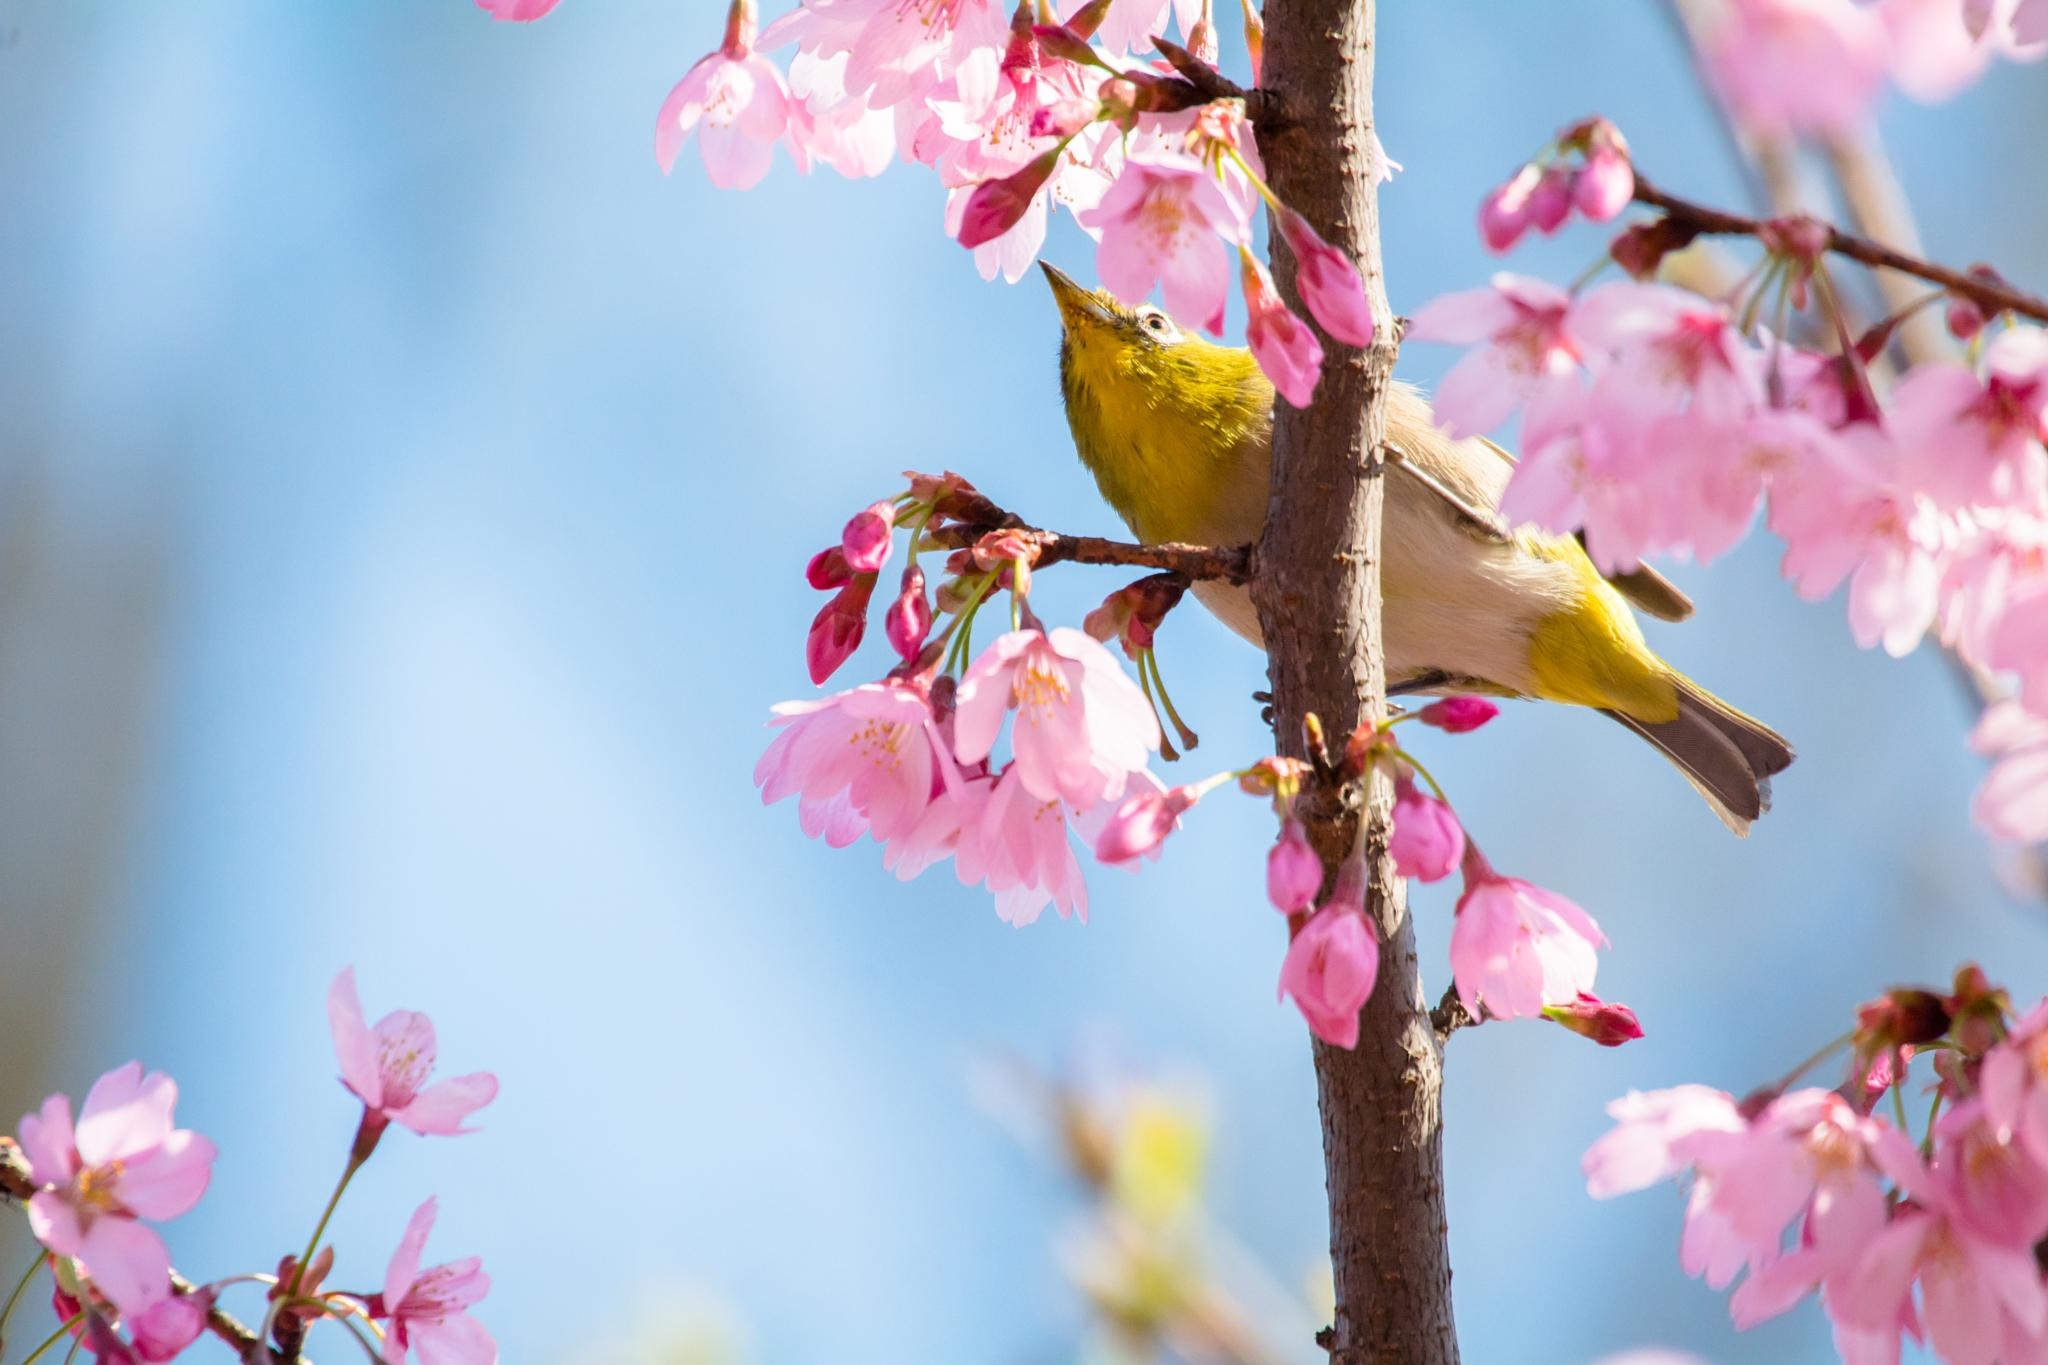 Loves the Cherry blossoms by Takafumi Ooshio